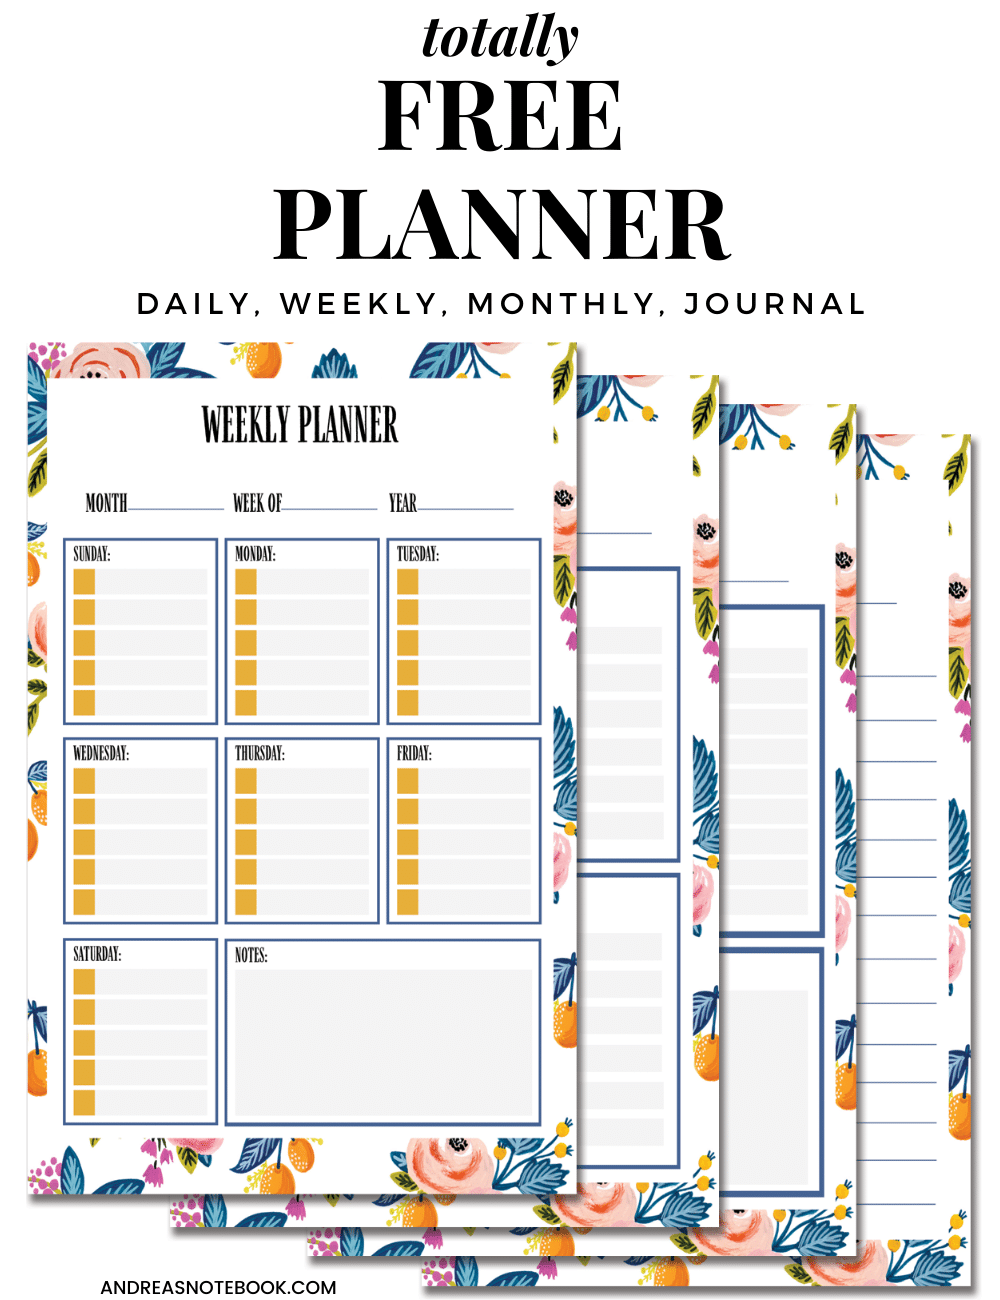 free planner - image of 4 free planner sheets on top of one another